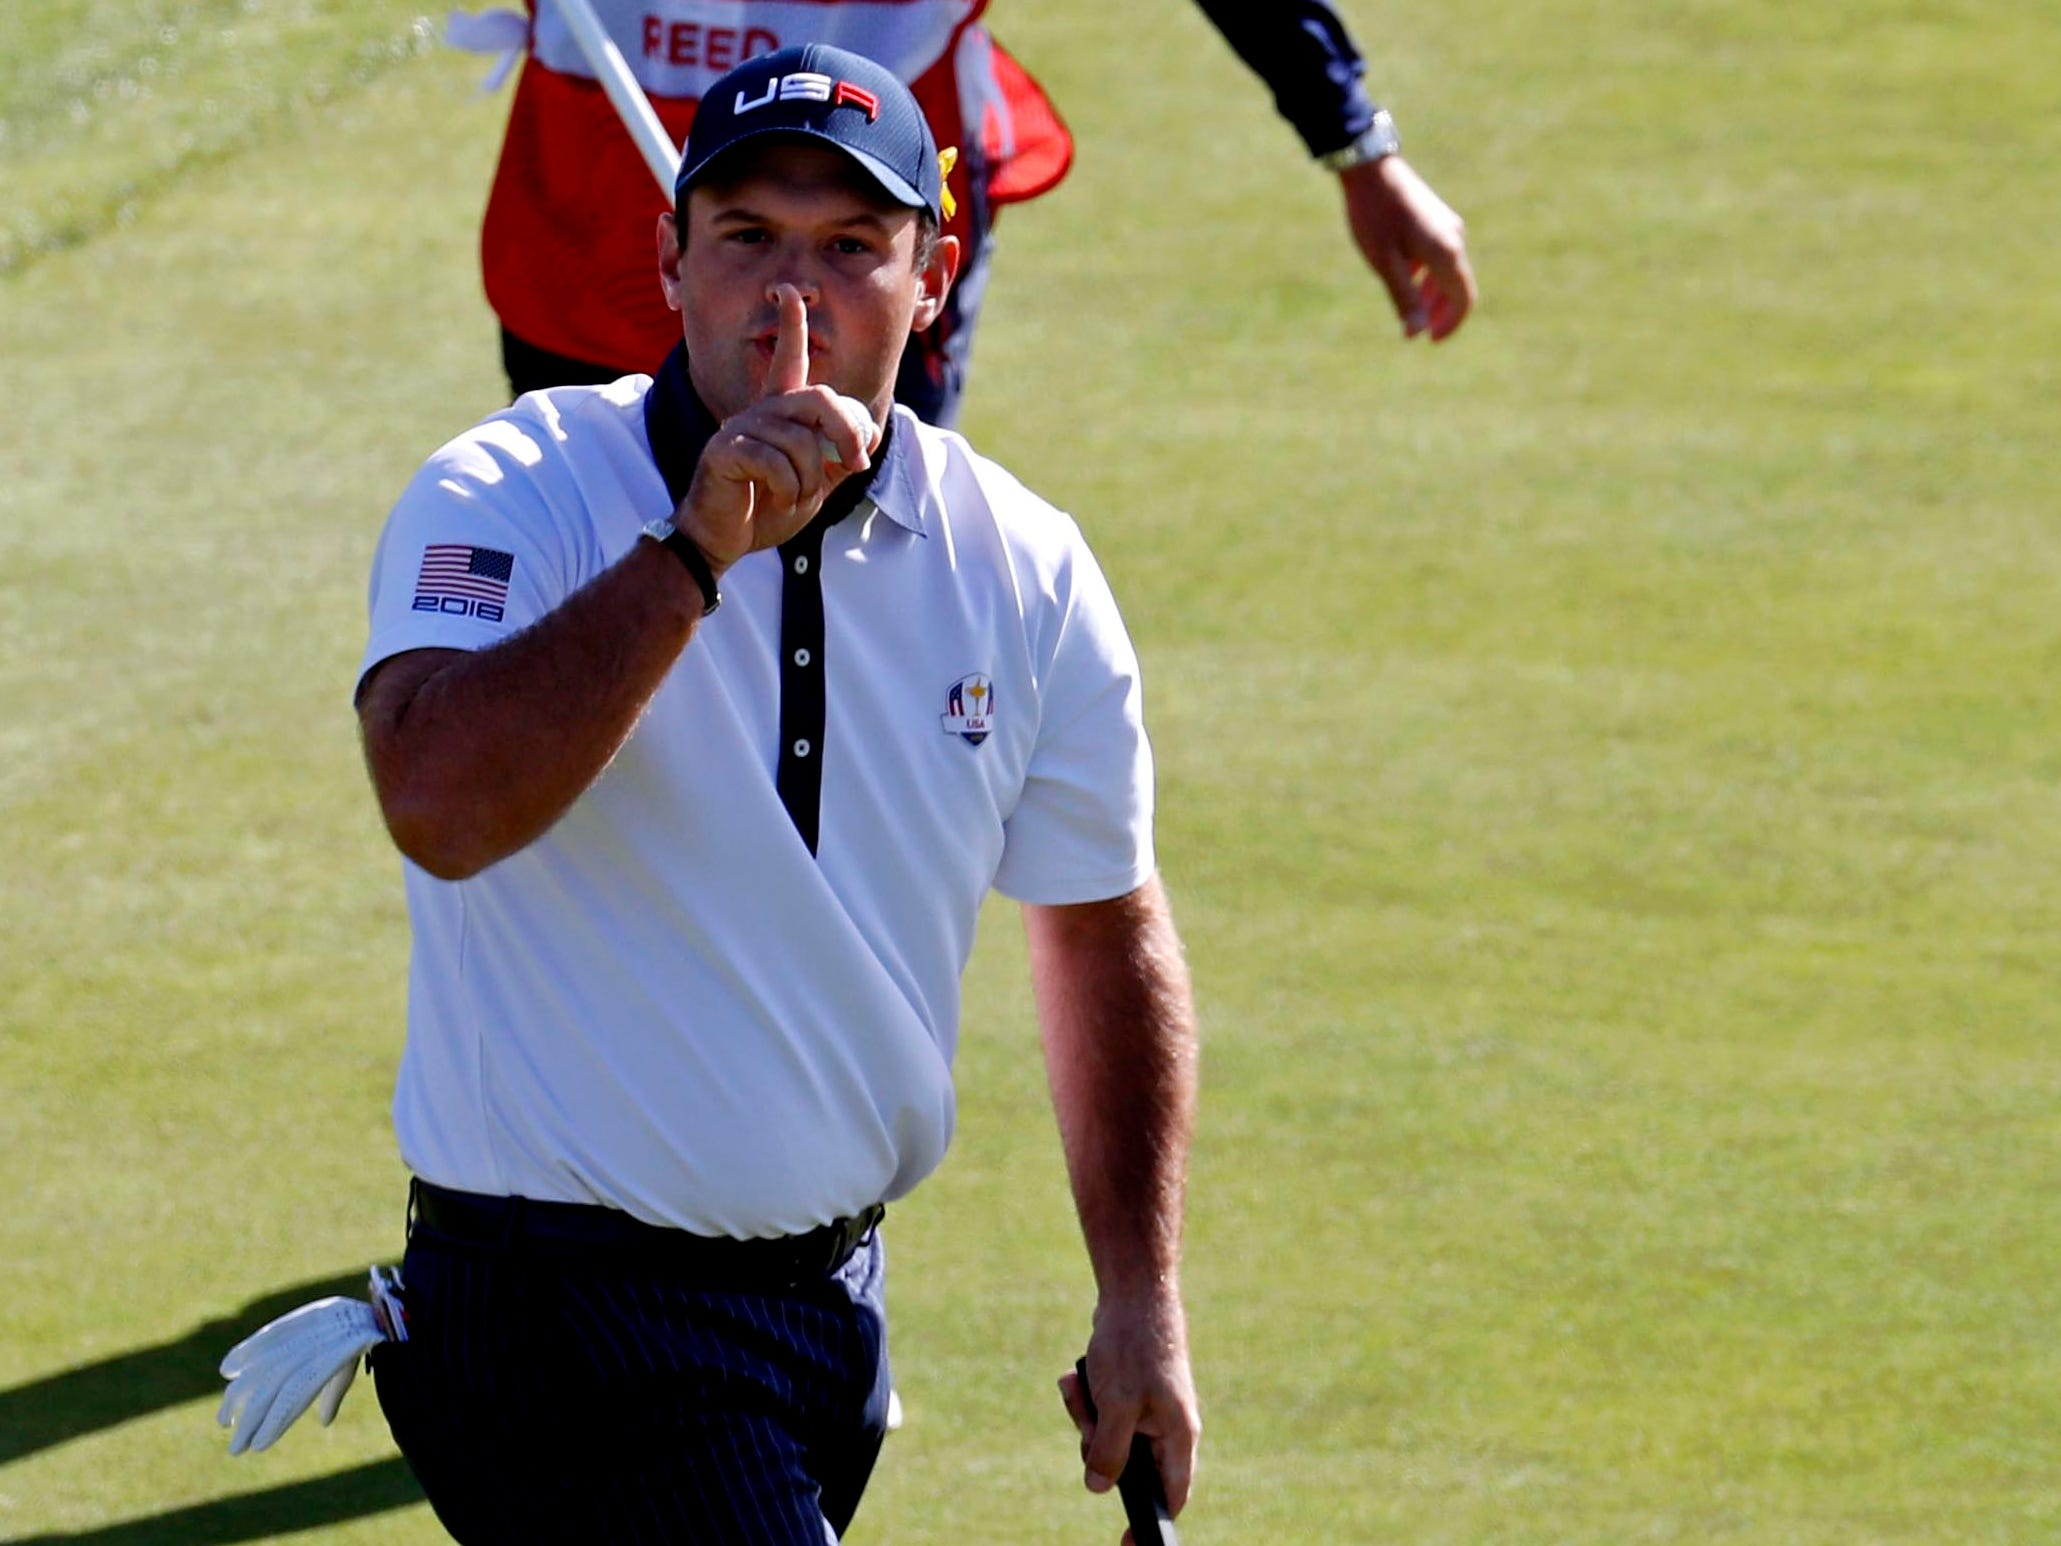 Patrick Reed tried to quiet the crowd with this putt on the ninth green on Saturday morning ...